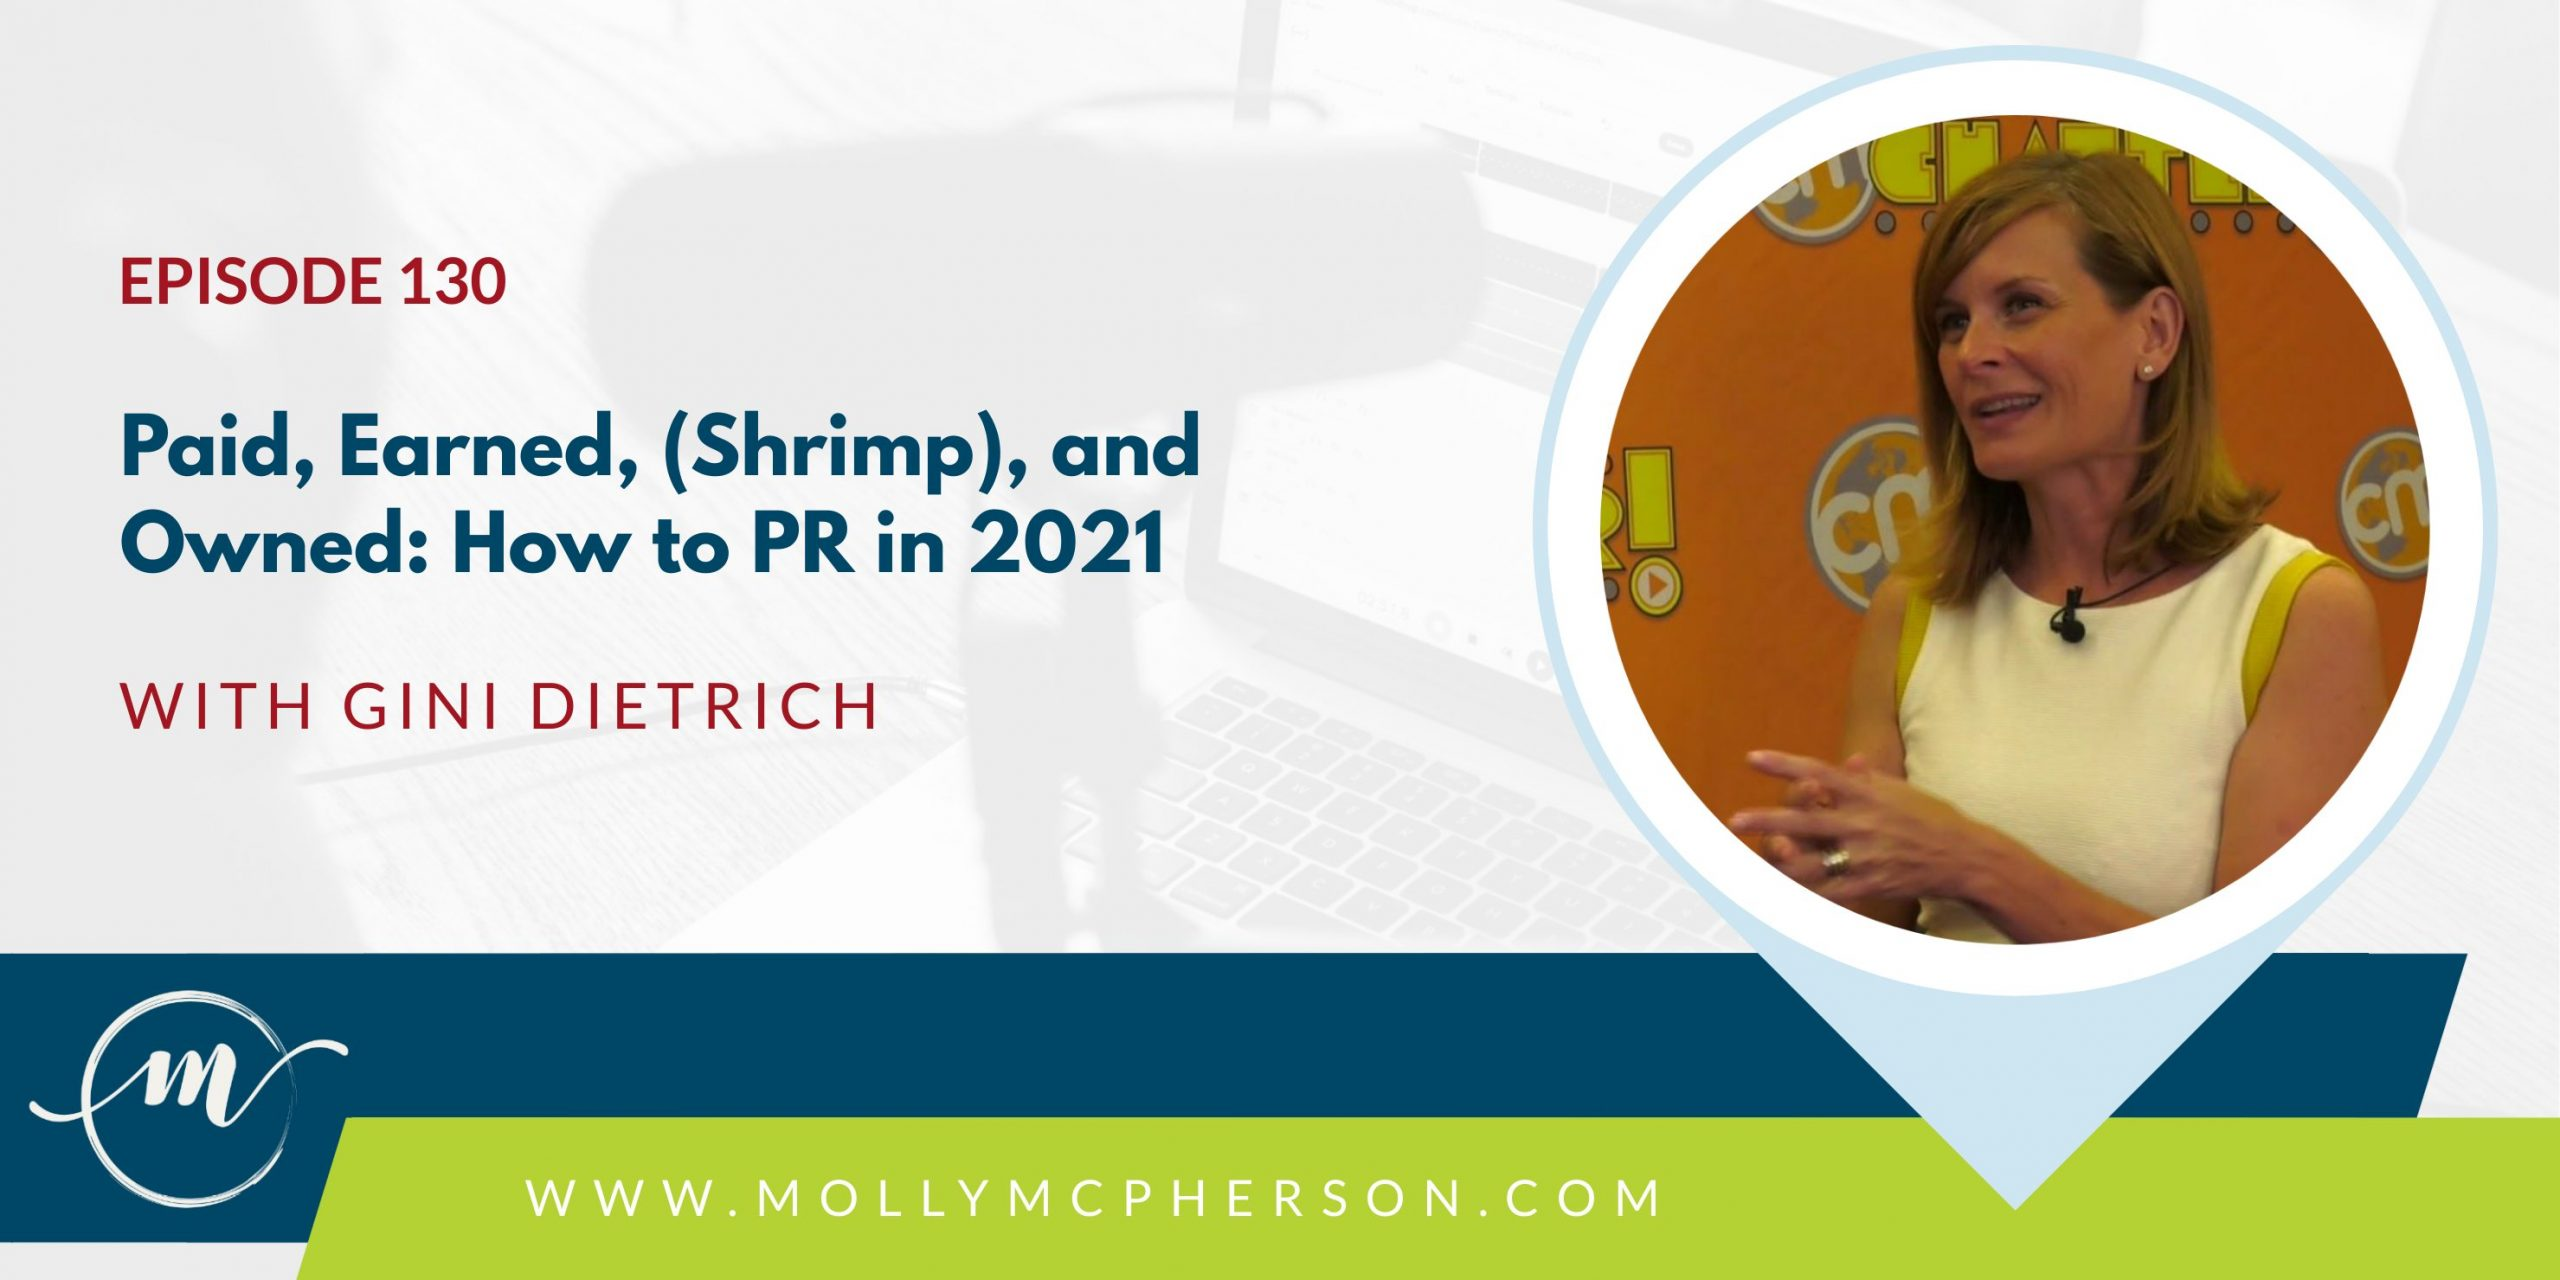 130: Paid, Earned, (Shrimp), and Owned: How to PR in 2021 with Gini Dietrich